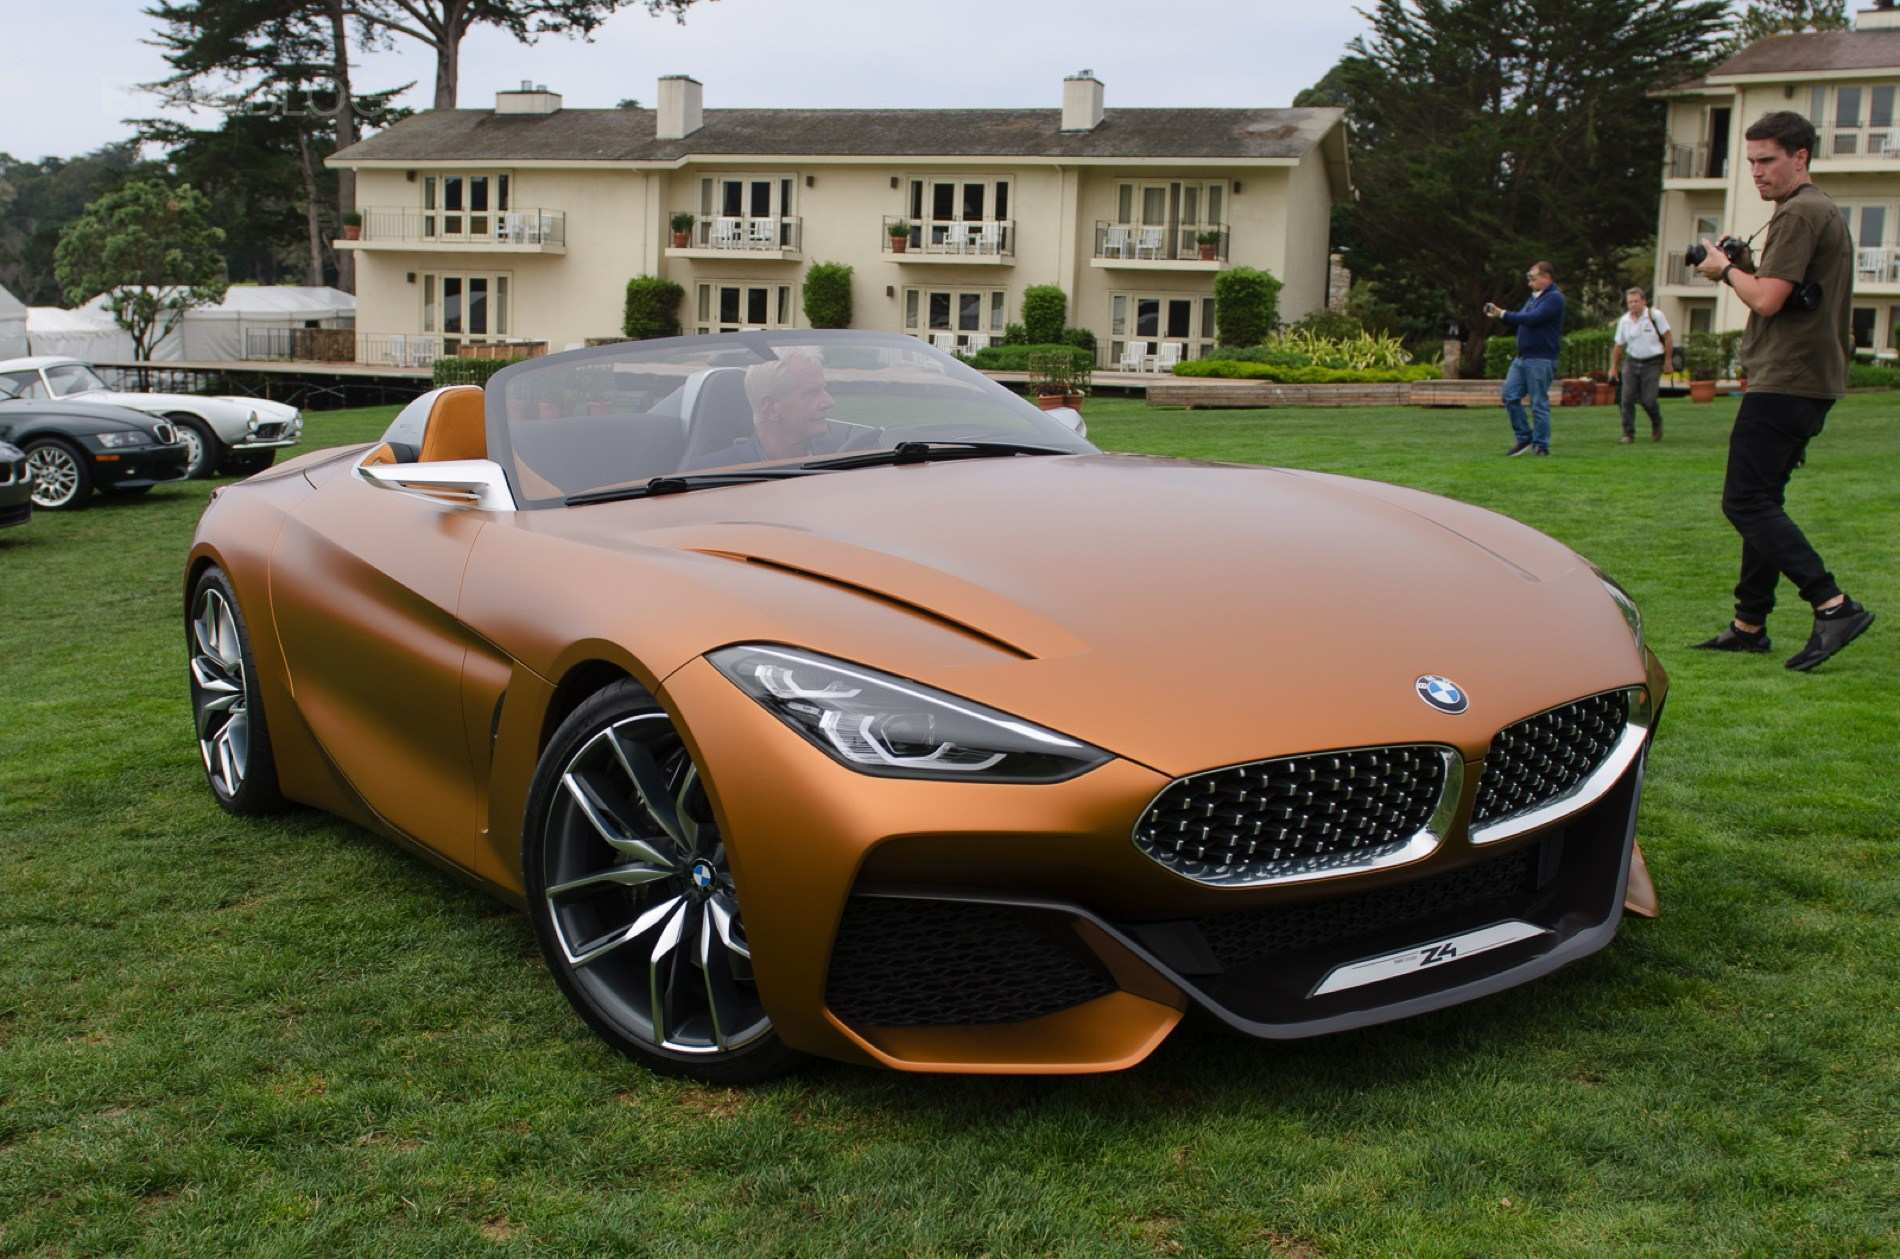 95 Great Bmw 2019 Z4 Price Price And Release Date New Review with Bmw 2019 Z4 Price Price And Release Date